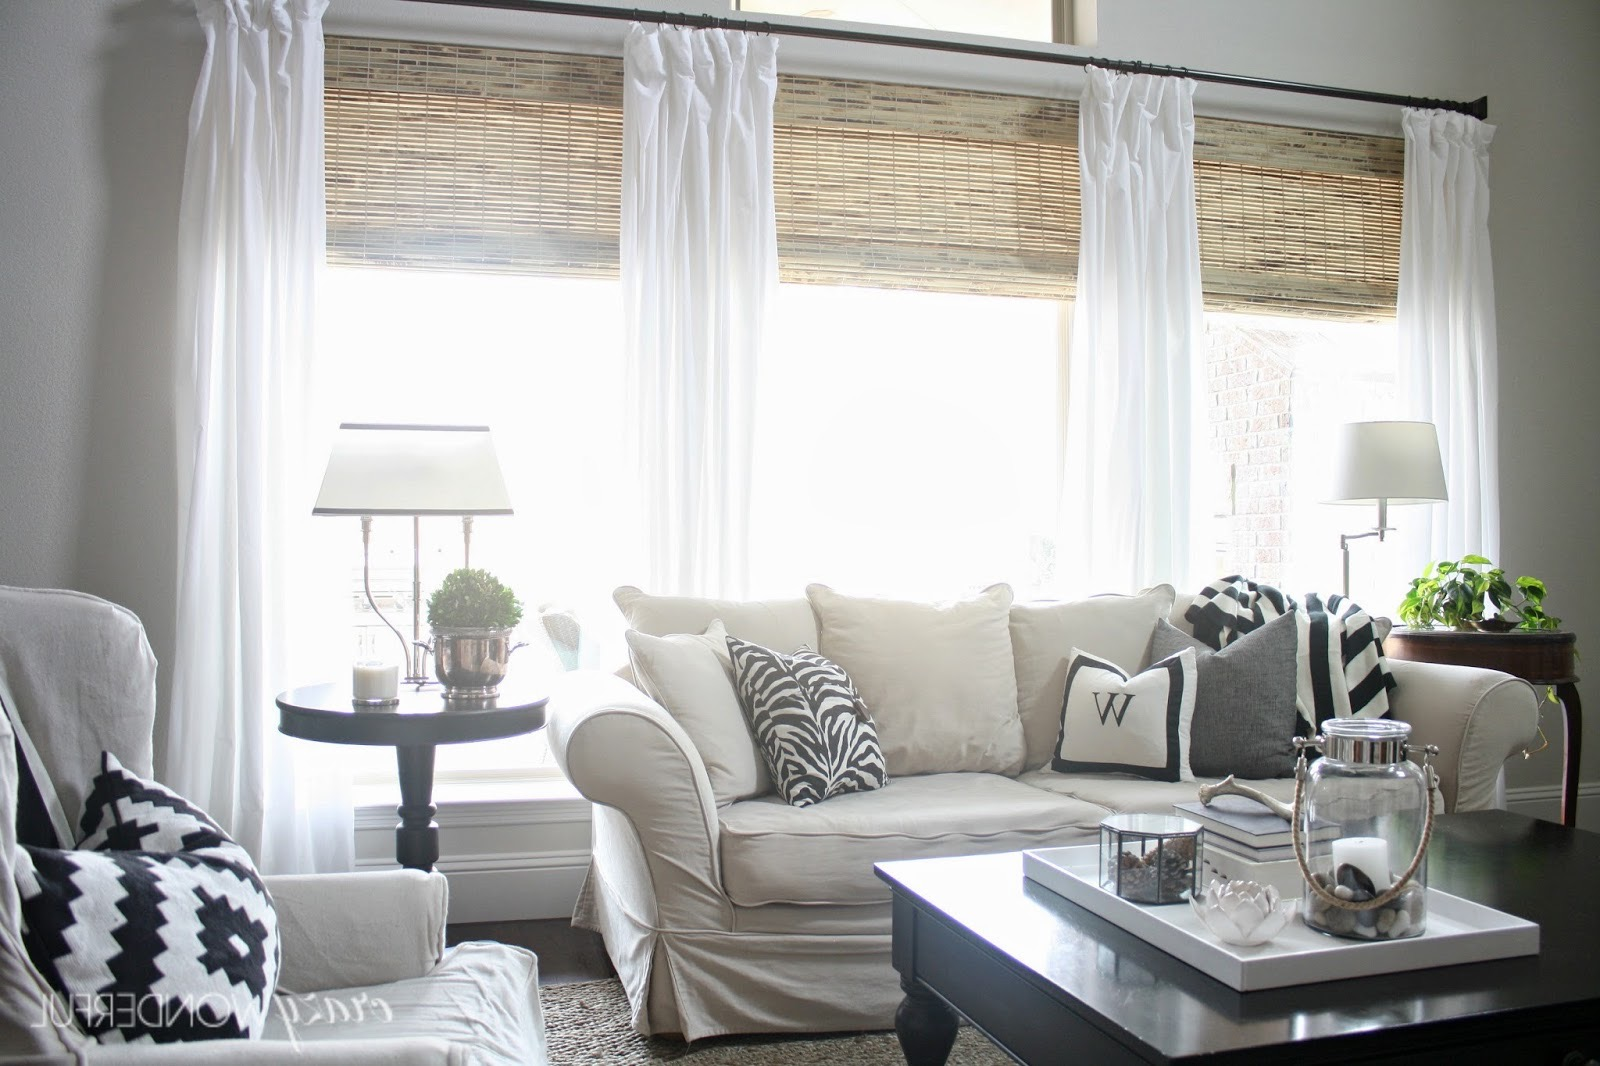 Bamboo Curtain And White Sheer Curtain Combo For Living Room (View 1 of 20)